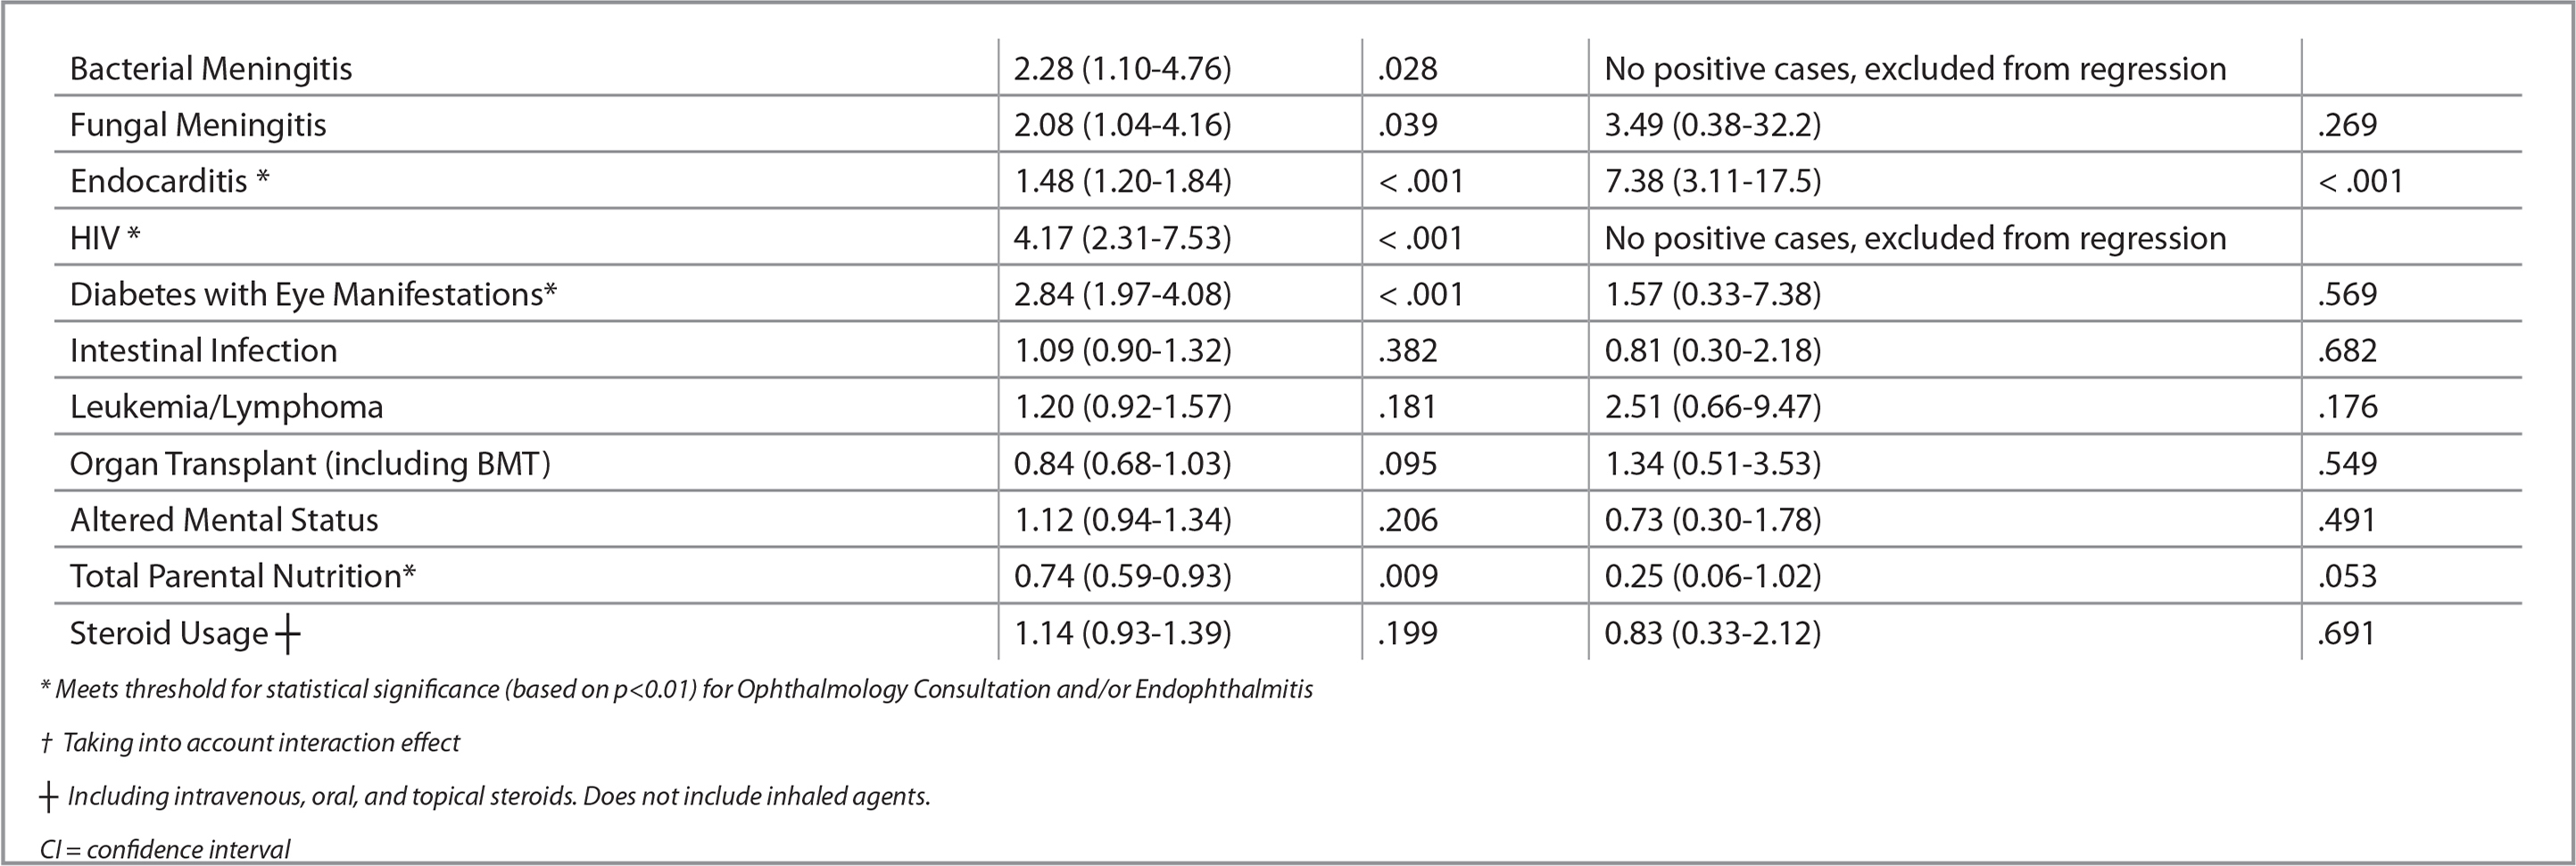 Clinical Predictors for Ophthalmology Consultation or Endophthalmitis